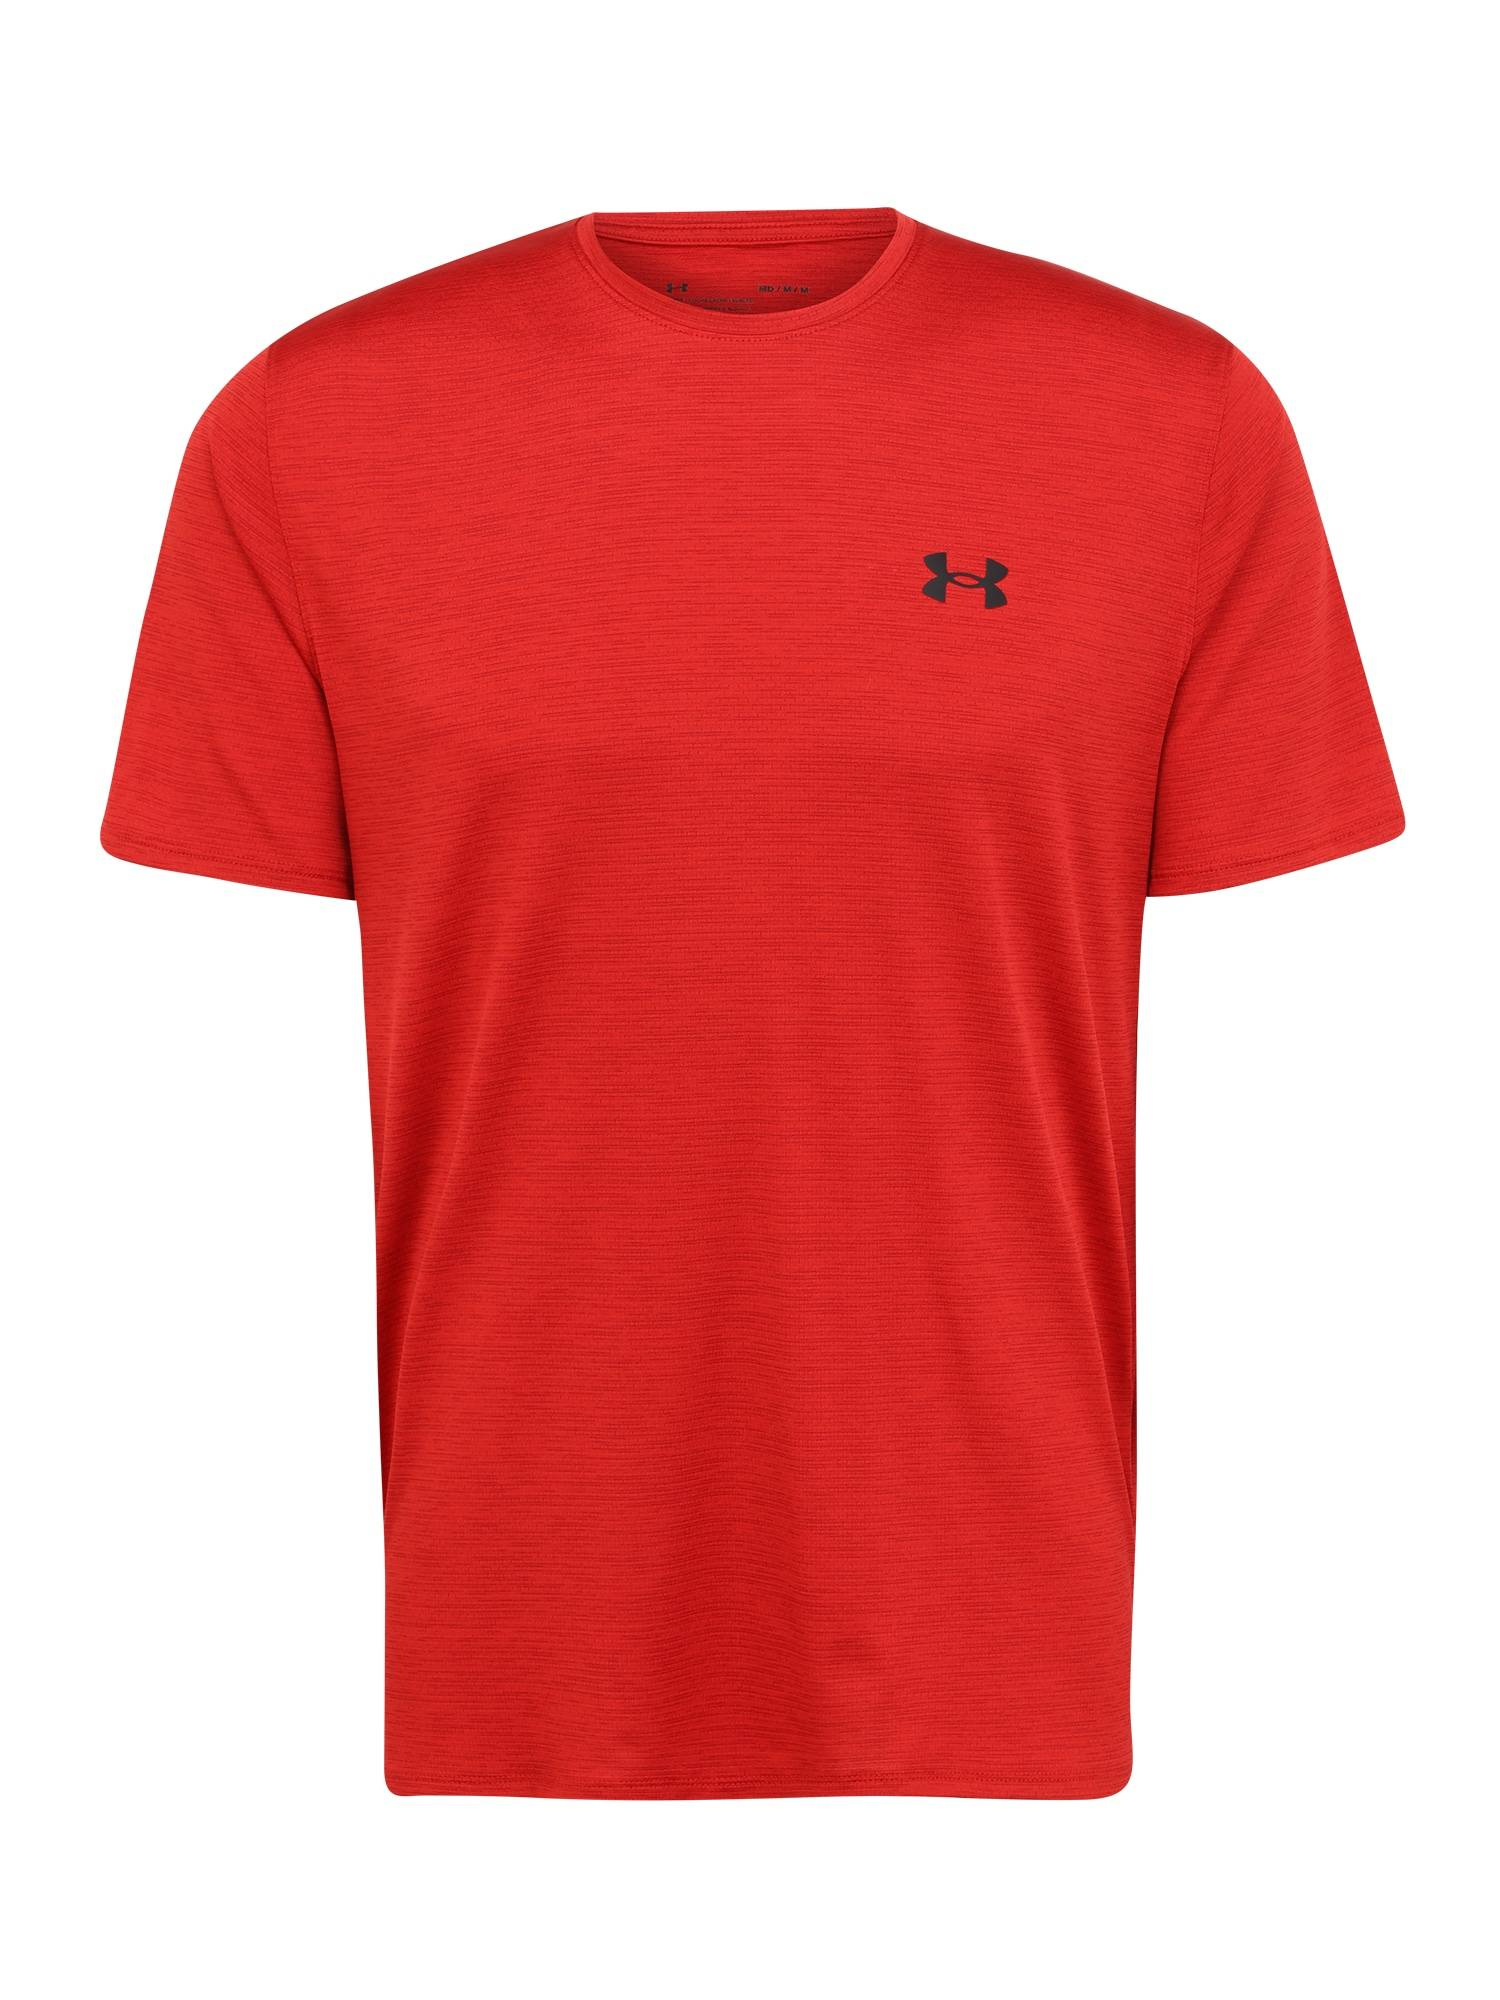 UNDER ARMOUR T-Shirt fonctionnel 'Train'  - Rouge - Taille: M - male